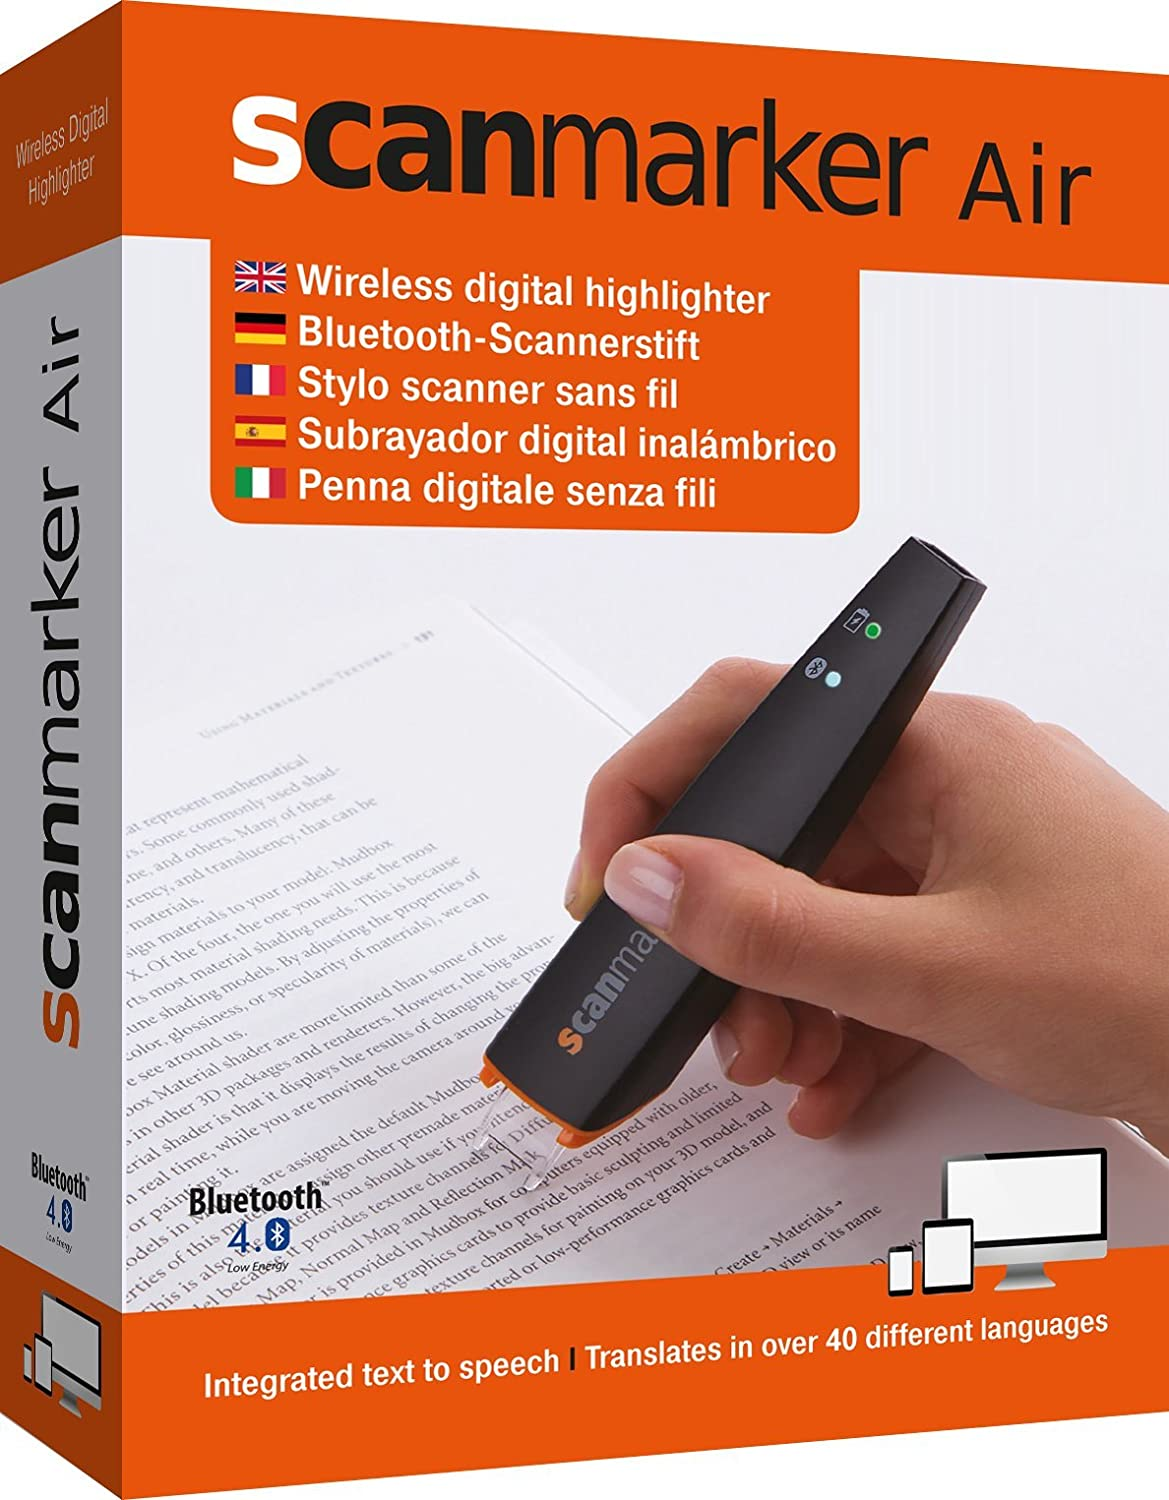 Scanmarker air text recognition pen scanner amazon computers scanmarker air text recognition pen scanner amazon computers accessories reheart Image collections